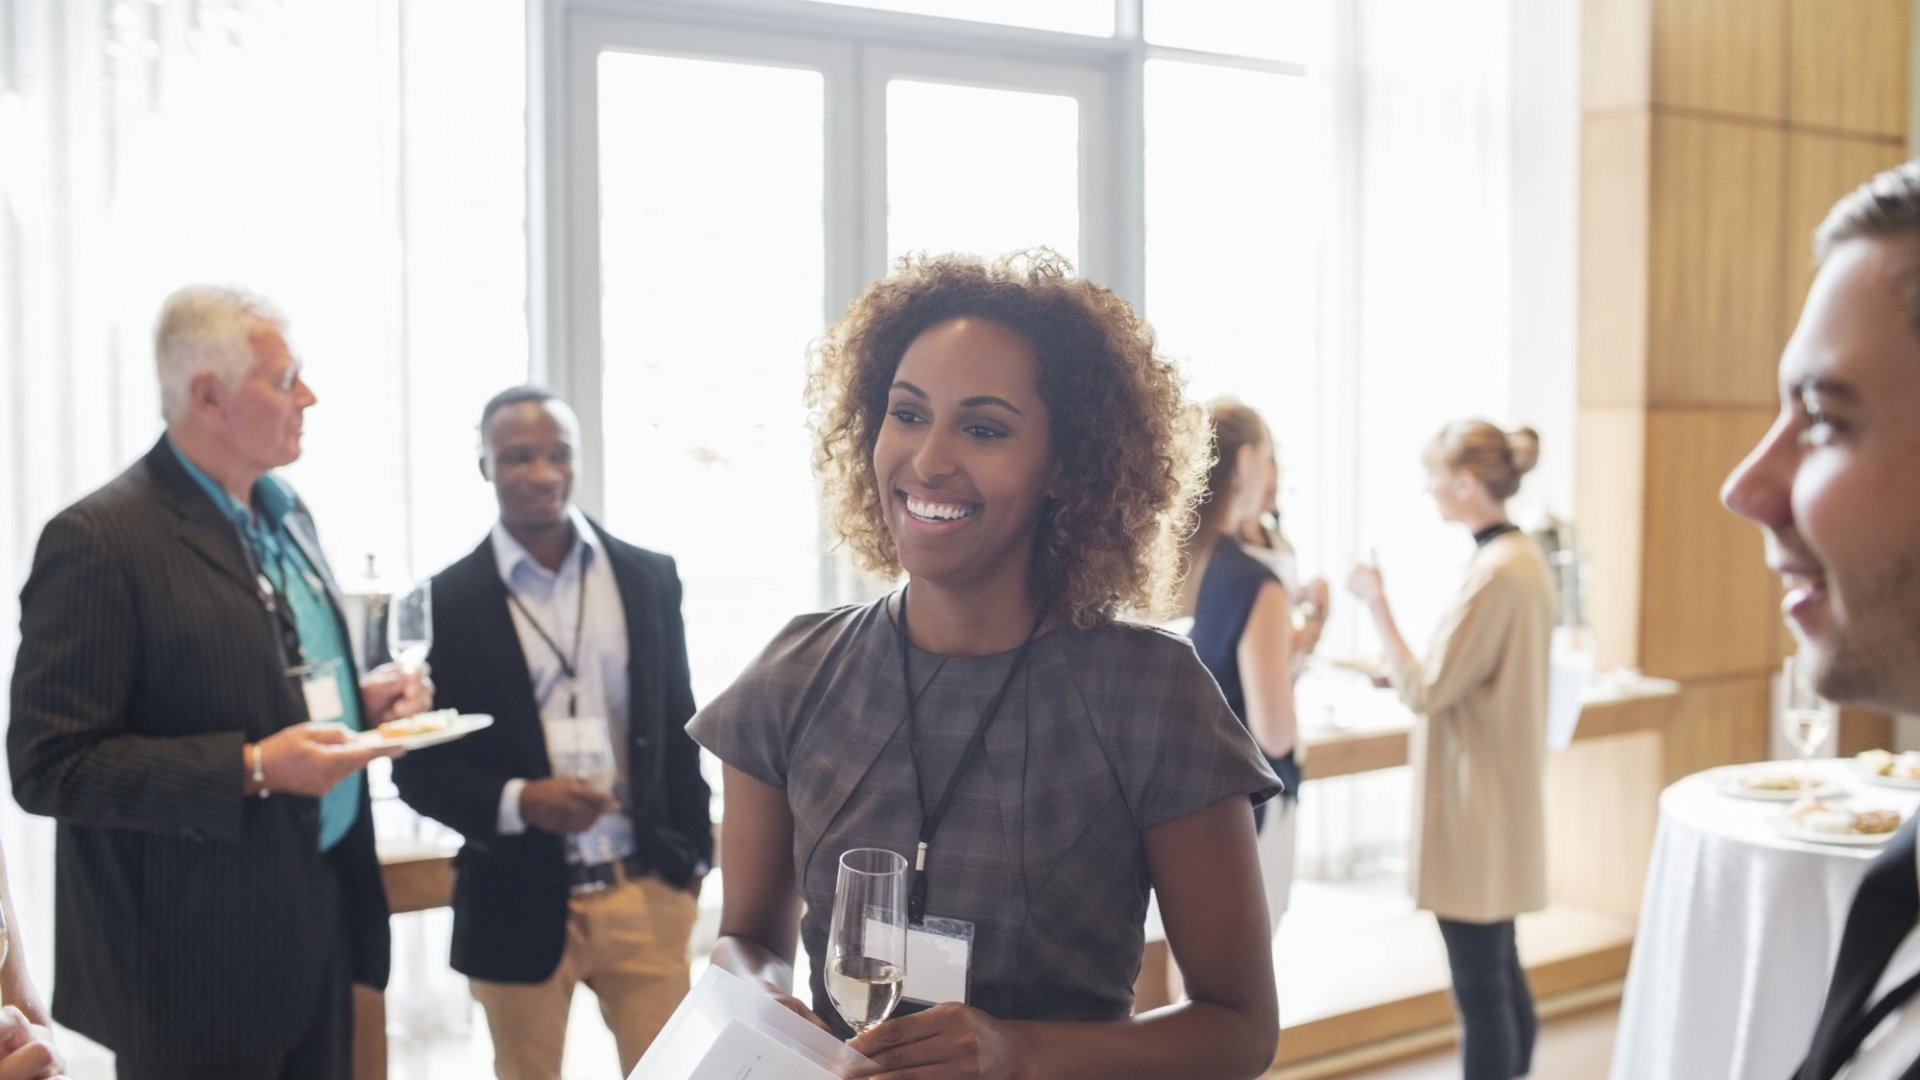 The 1 Reason You Should Network at Every Opportunity